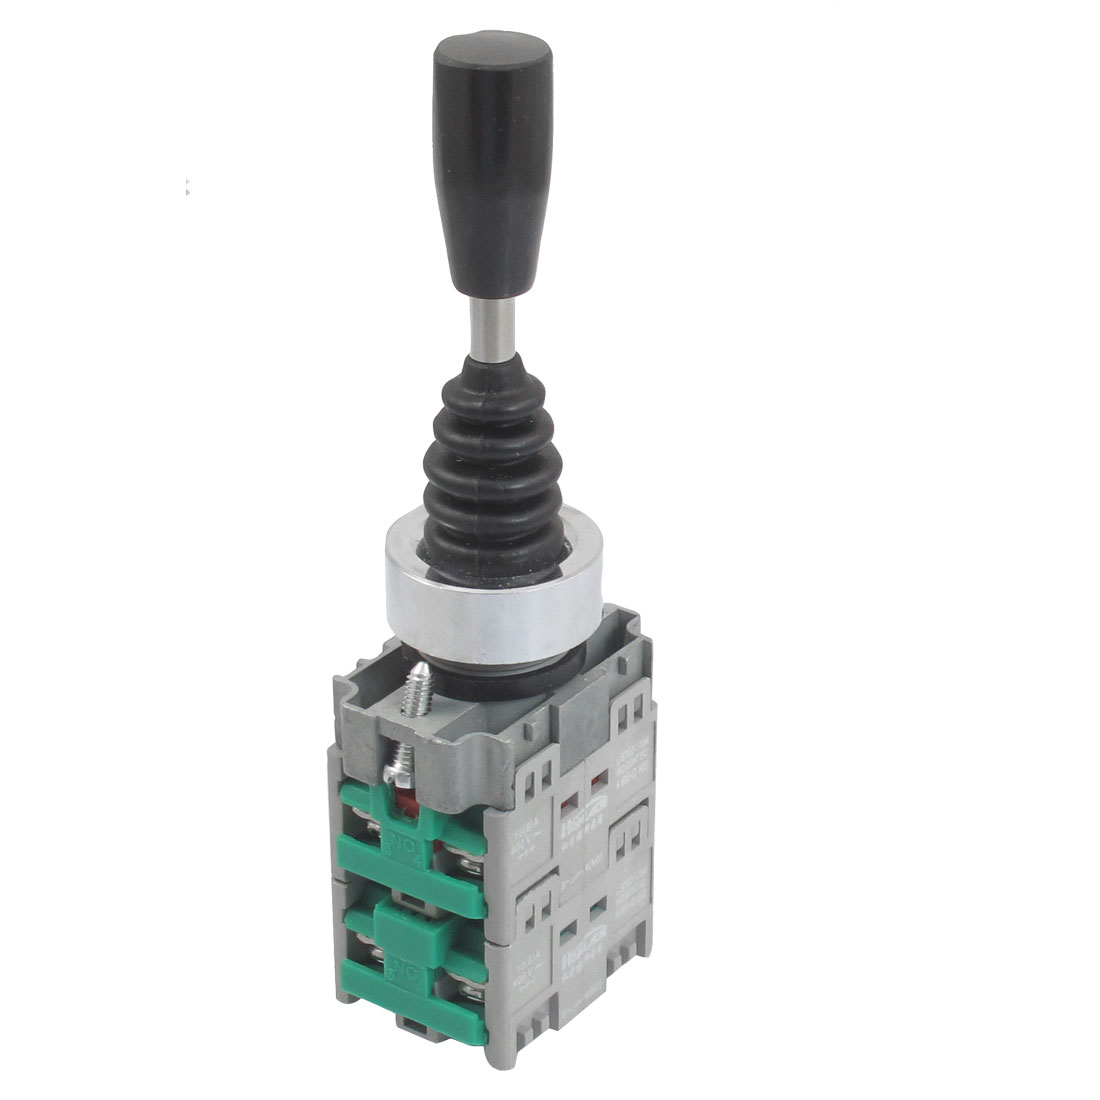 AC 400V 10A Latching 4 Normal Open 22mm Fixing Hole Joystick Switch